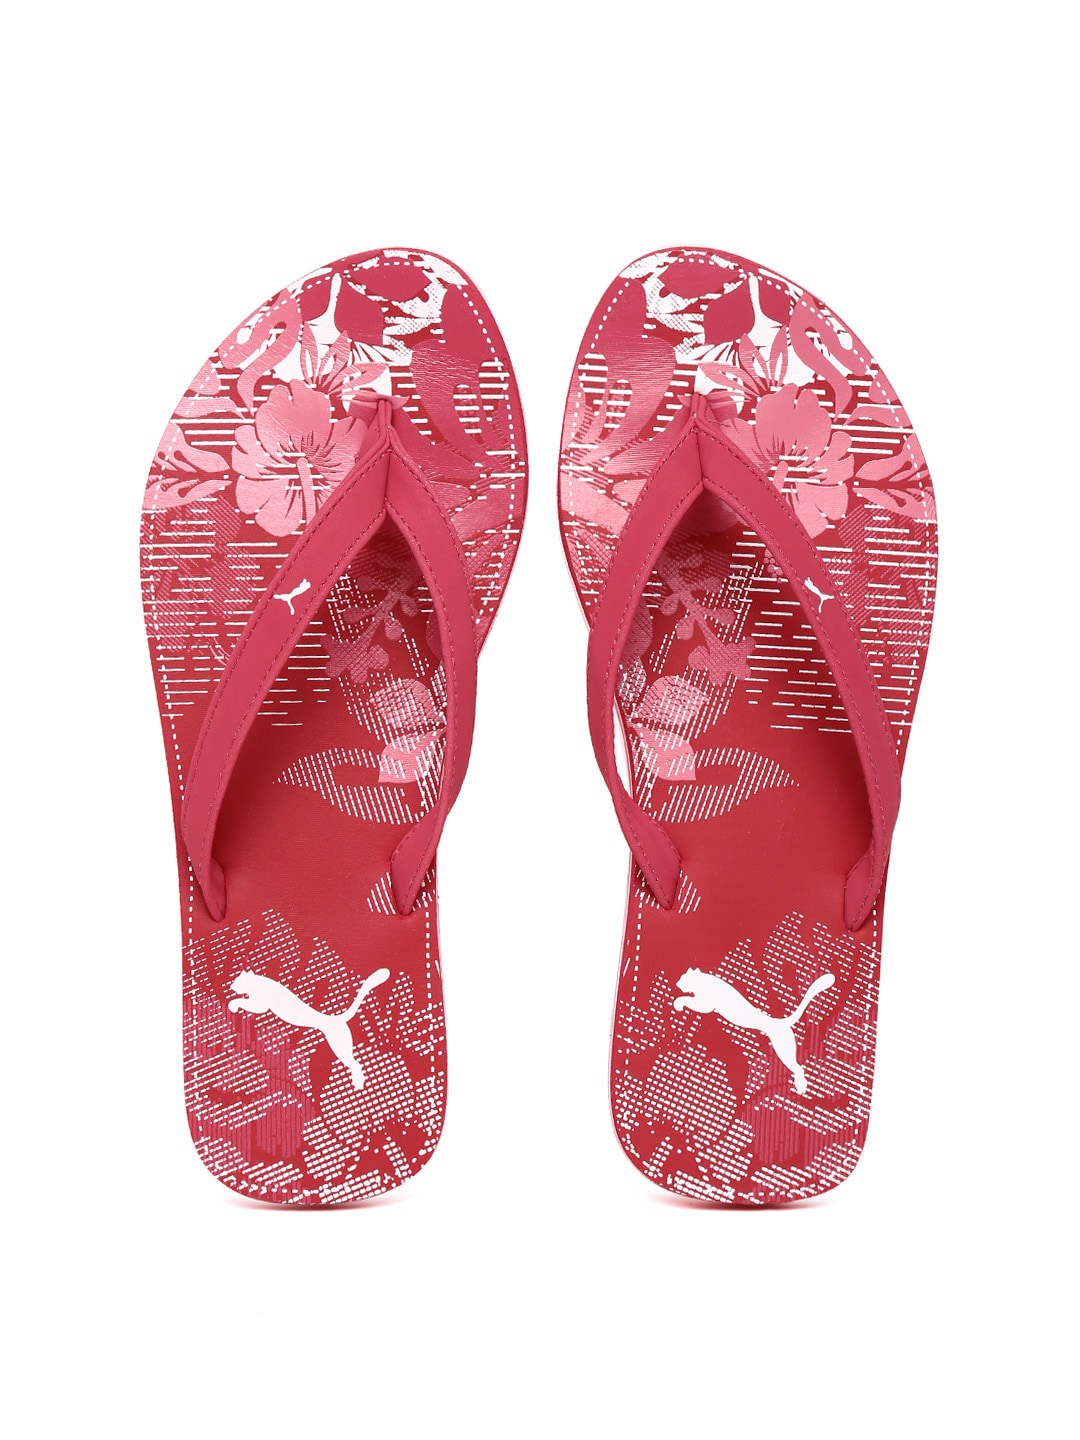 Best place to buy slippers Cheap shoes online